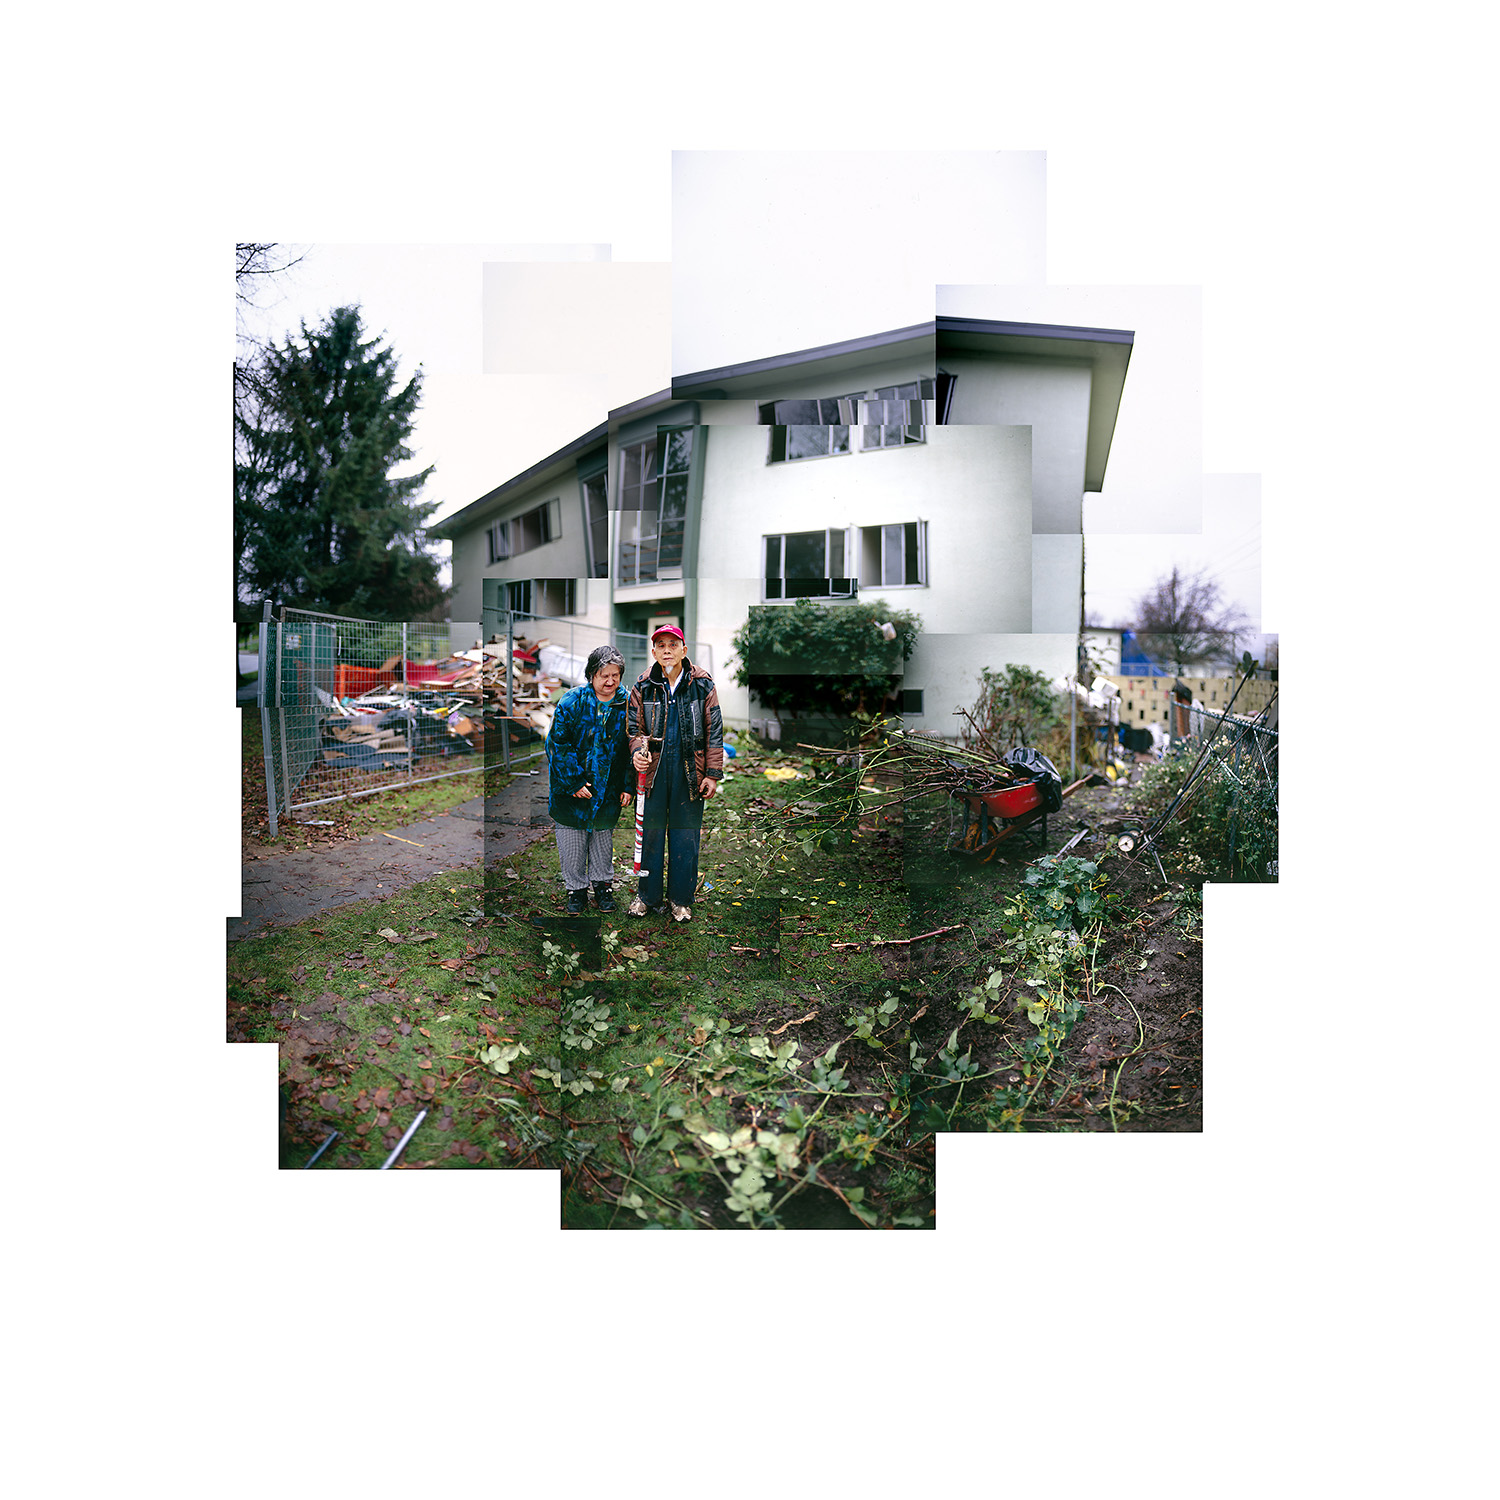 Sammy and Joan are framed by their home at Little Mountain prior to its demolition in 2009 - David Vaisbord photo.